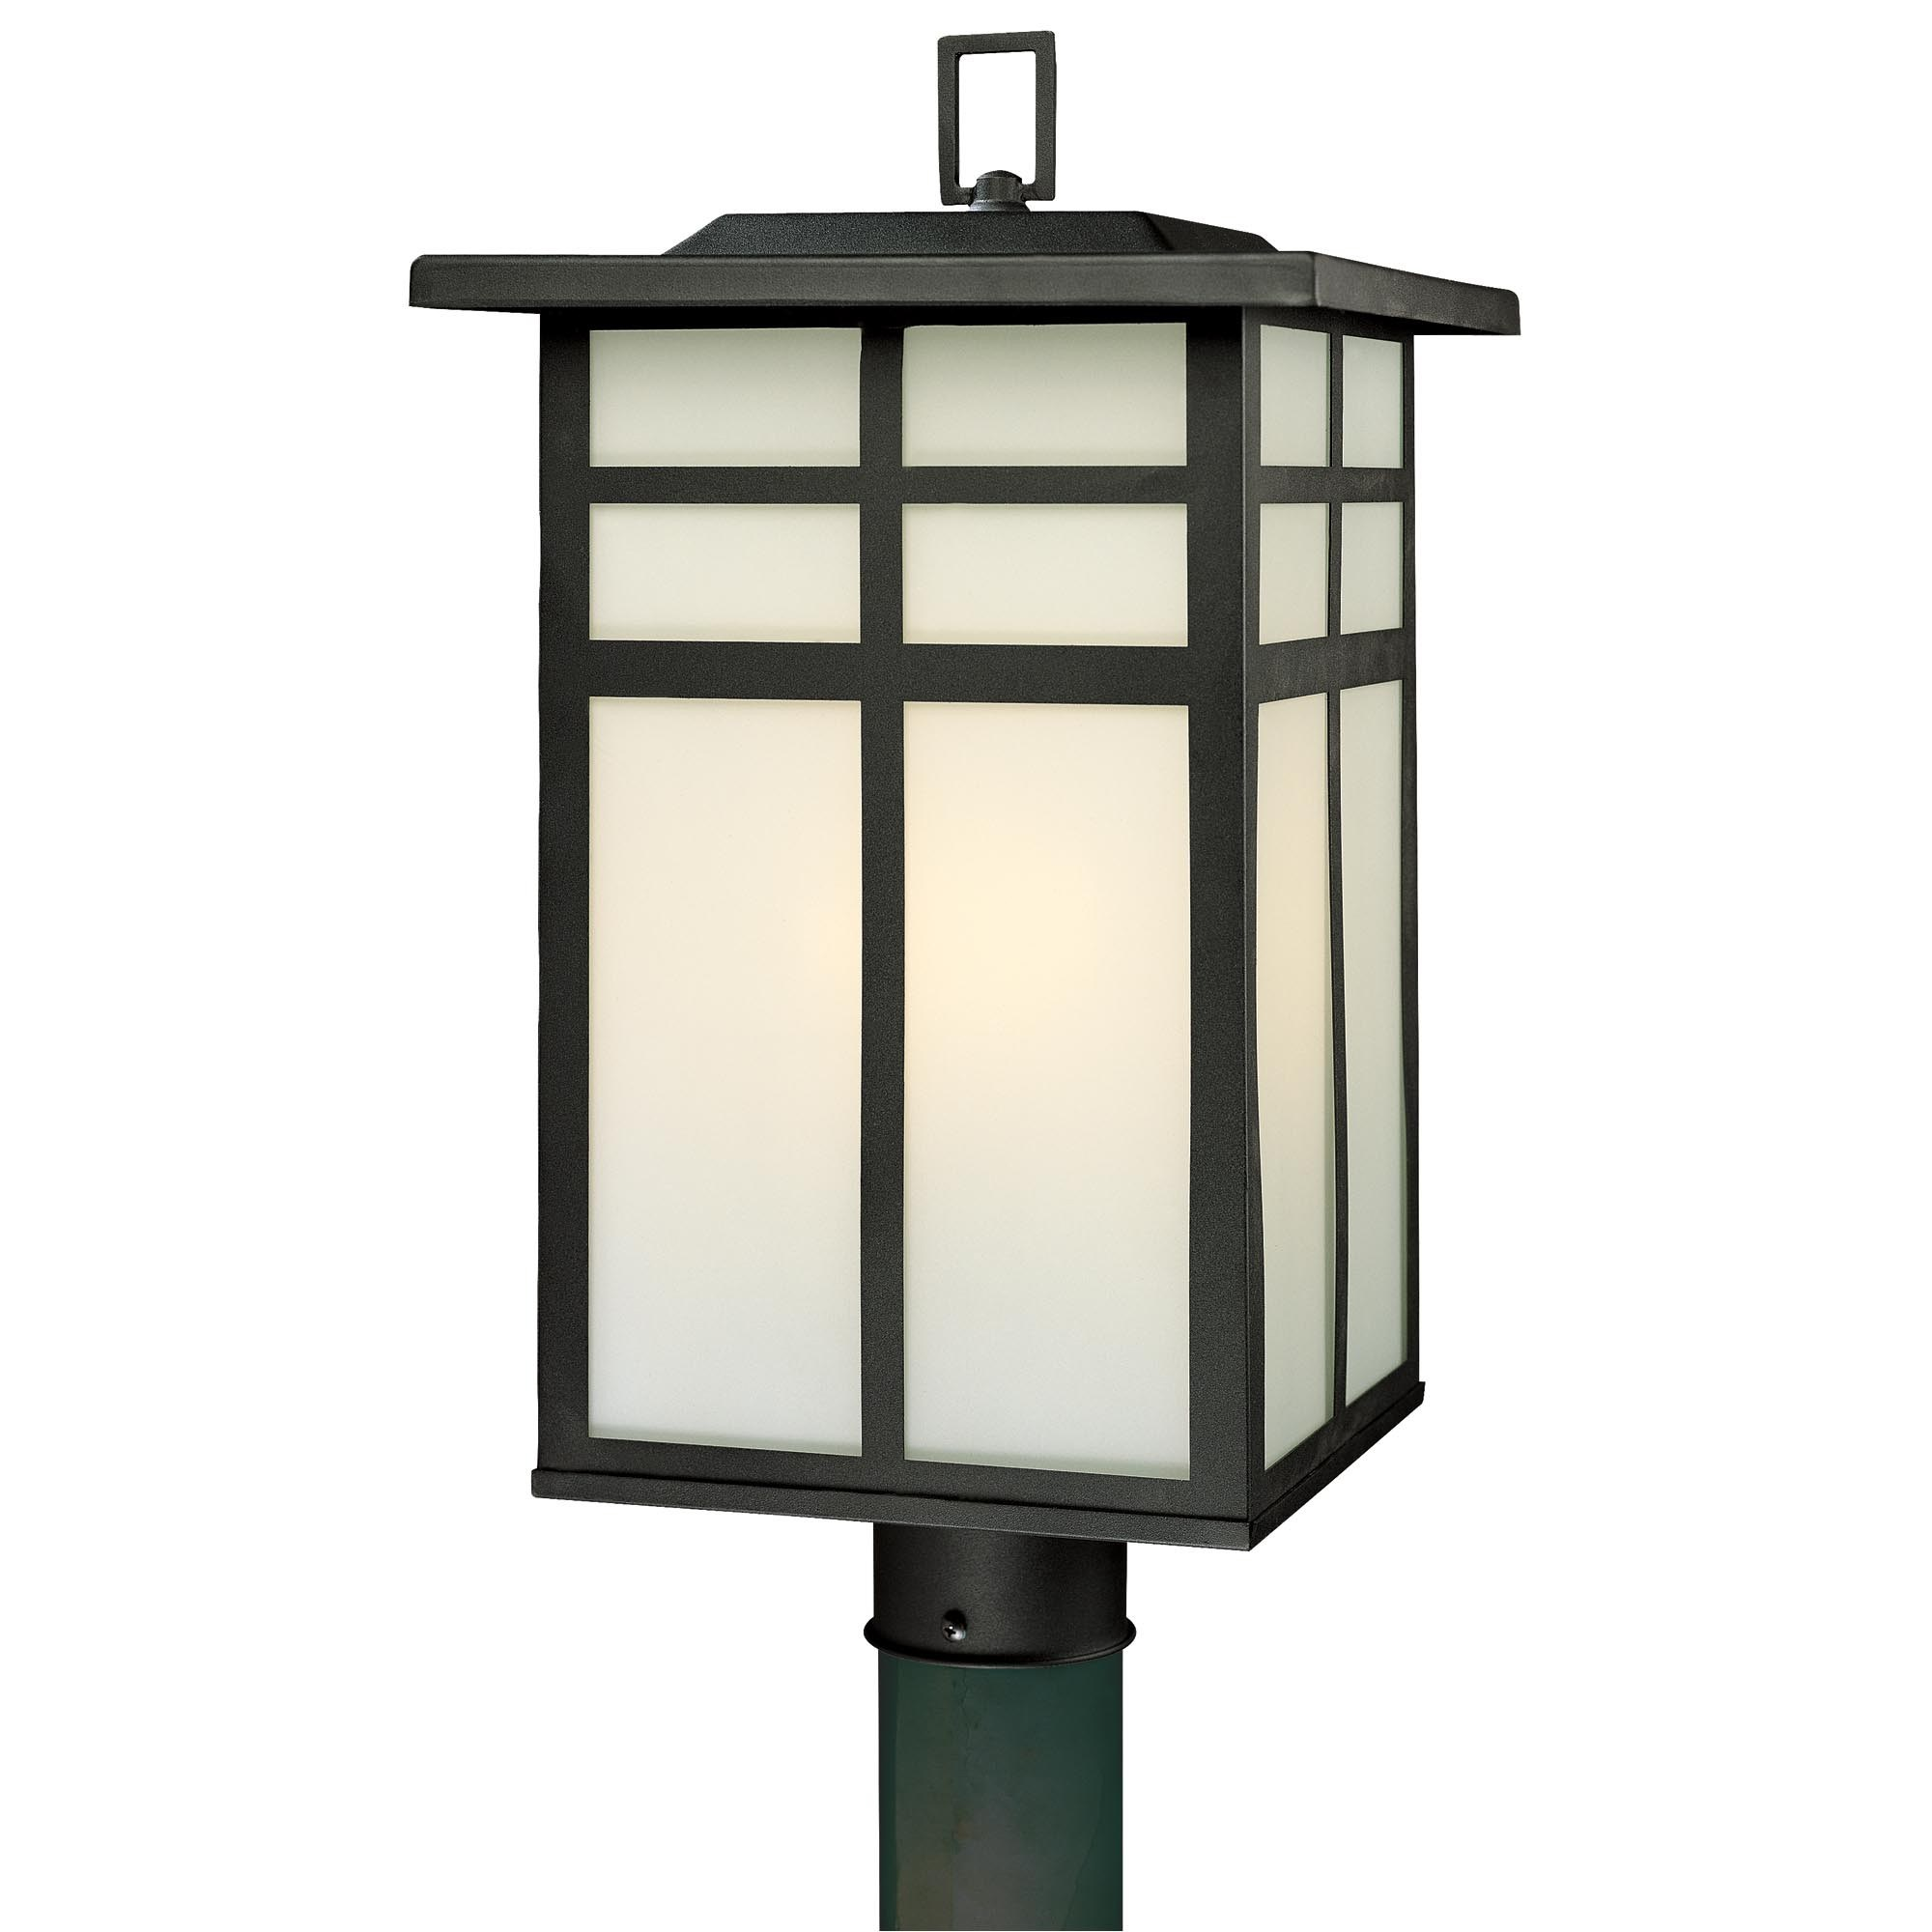 Outdoor lamp post modern design cast iron outdoor lamp for Outdoor yard light fixtures